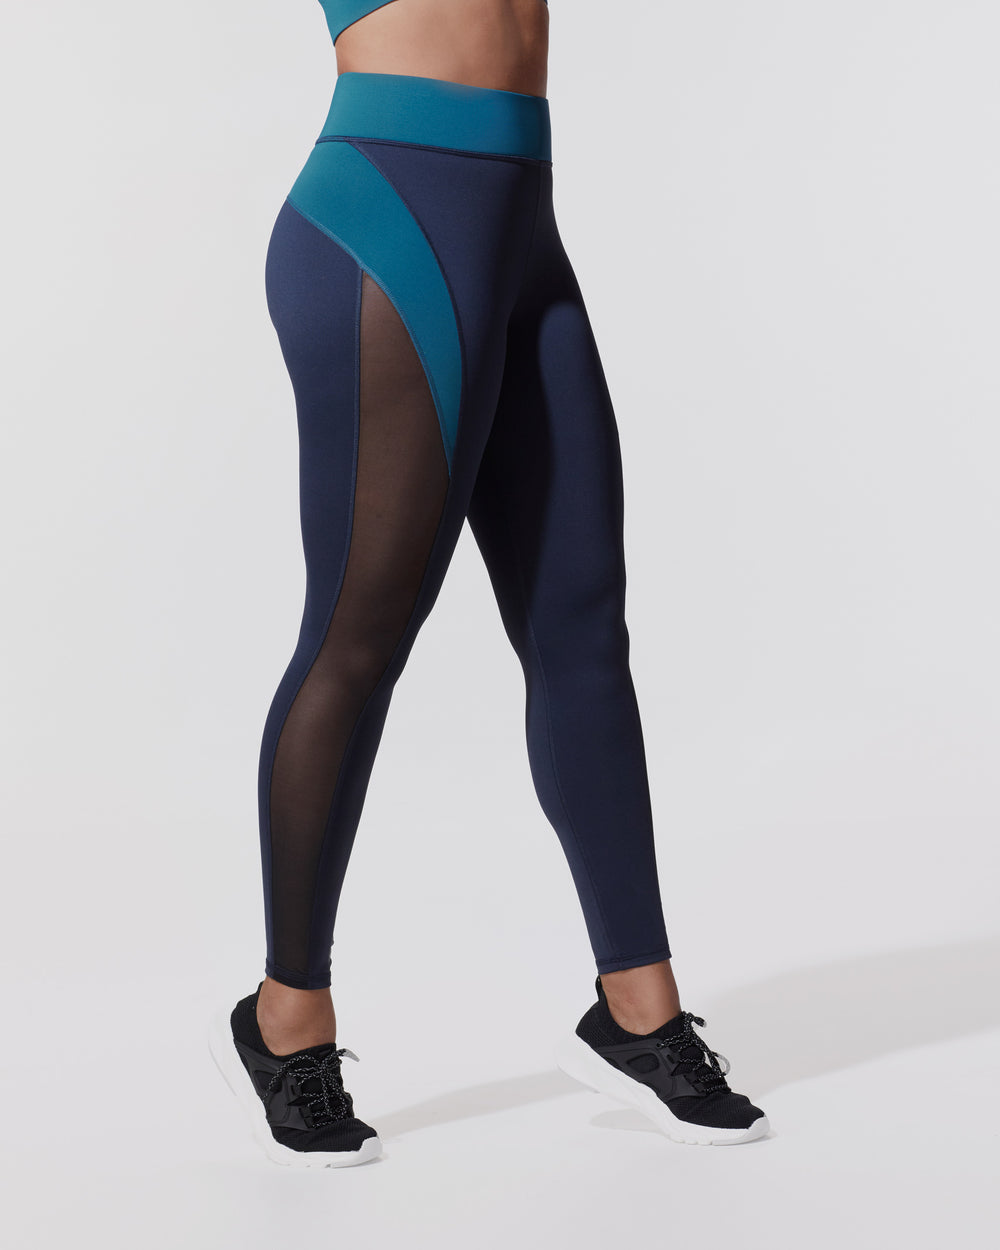 Raven Legging - Deep Sea Navy/Lagoon